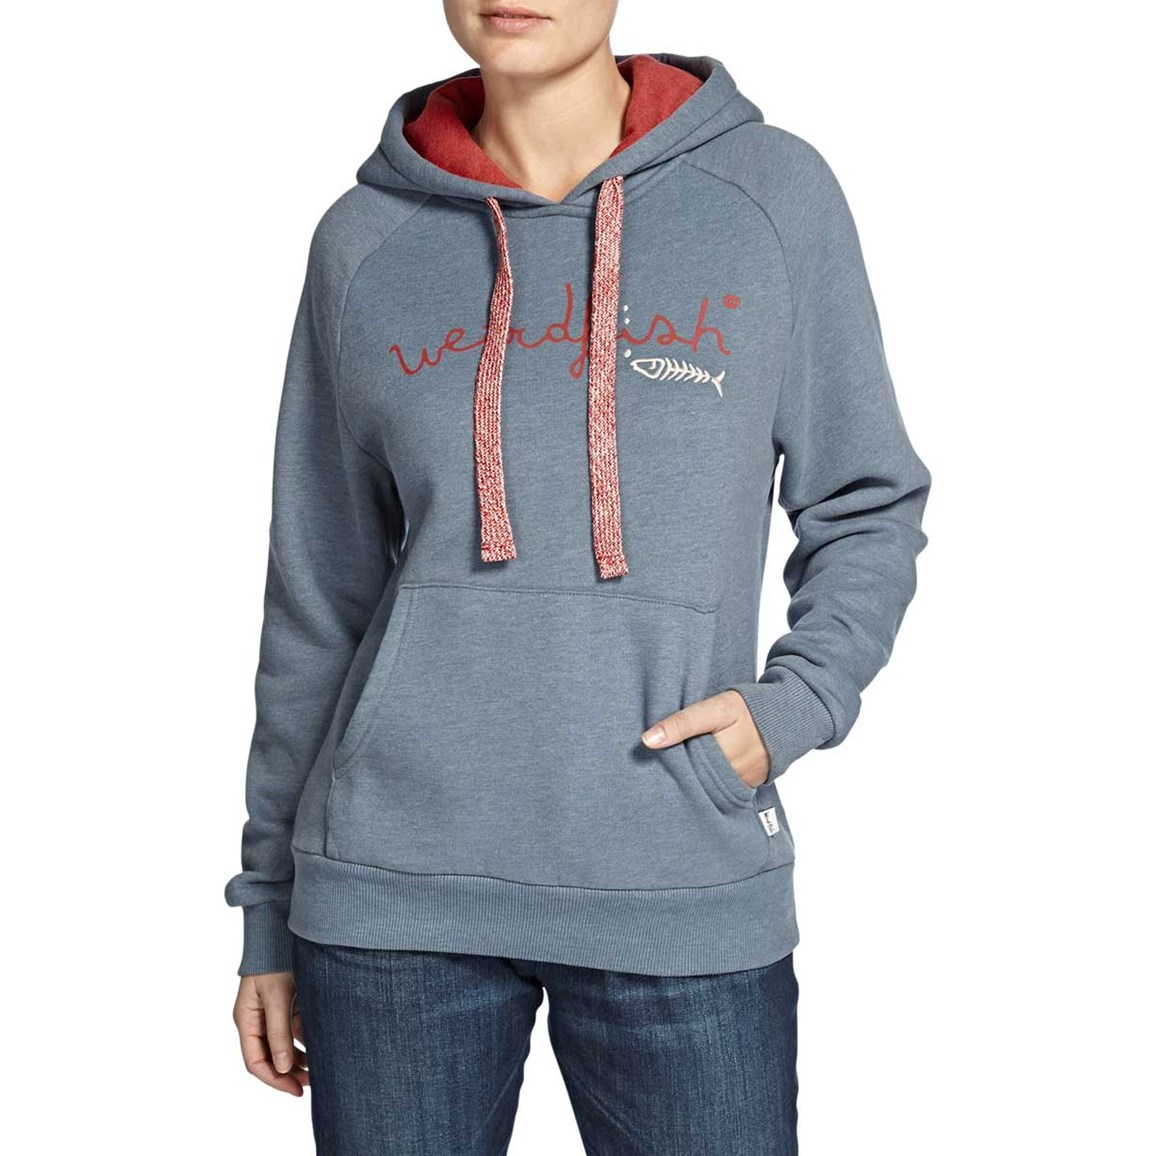 Twilight Branded Graphic Print Hooded Sweatshirt Storm